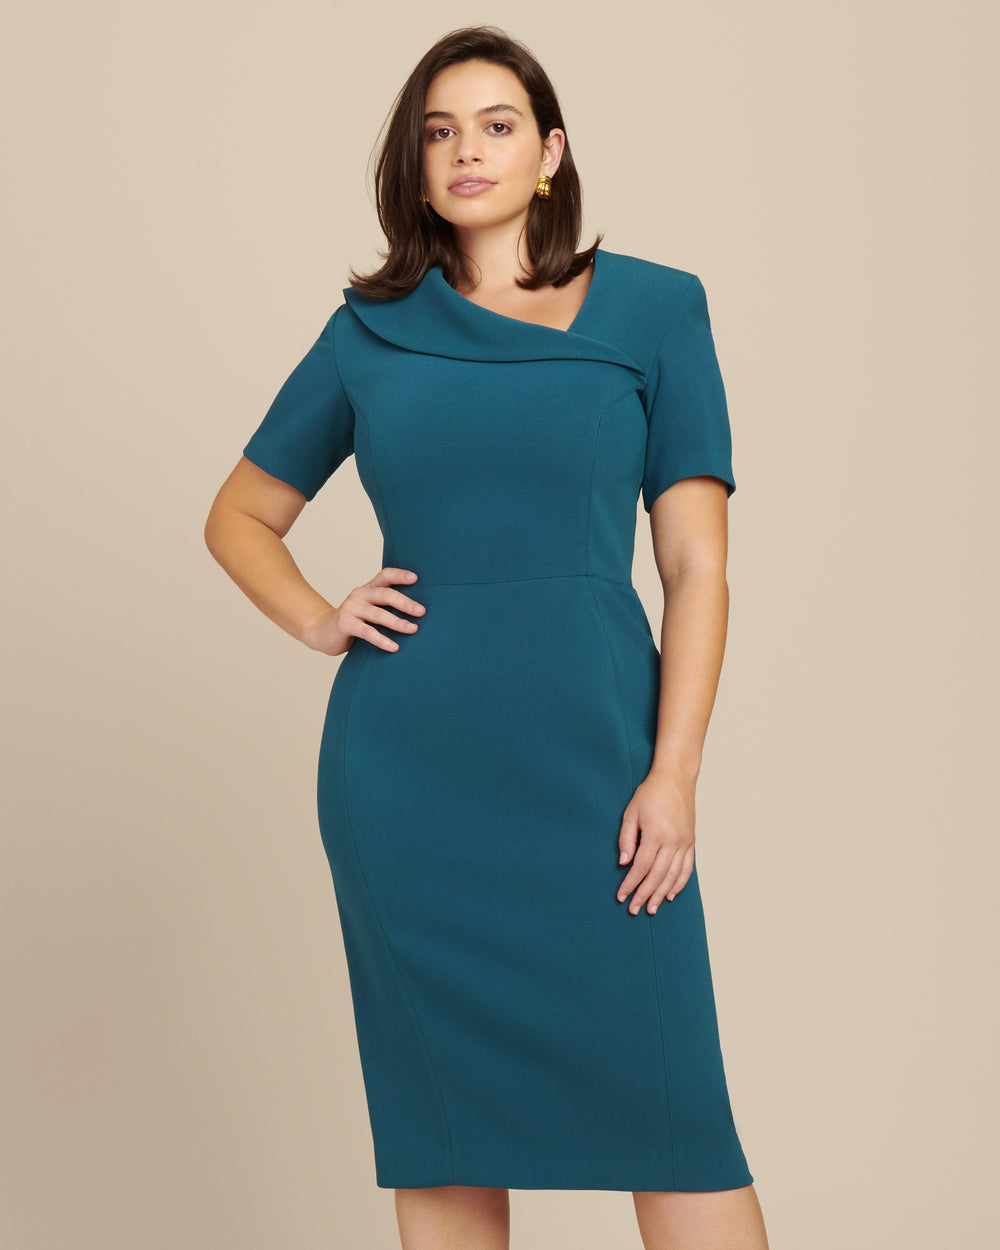 Bonded Crepe Cocktail Dress